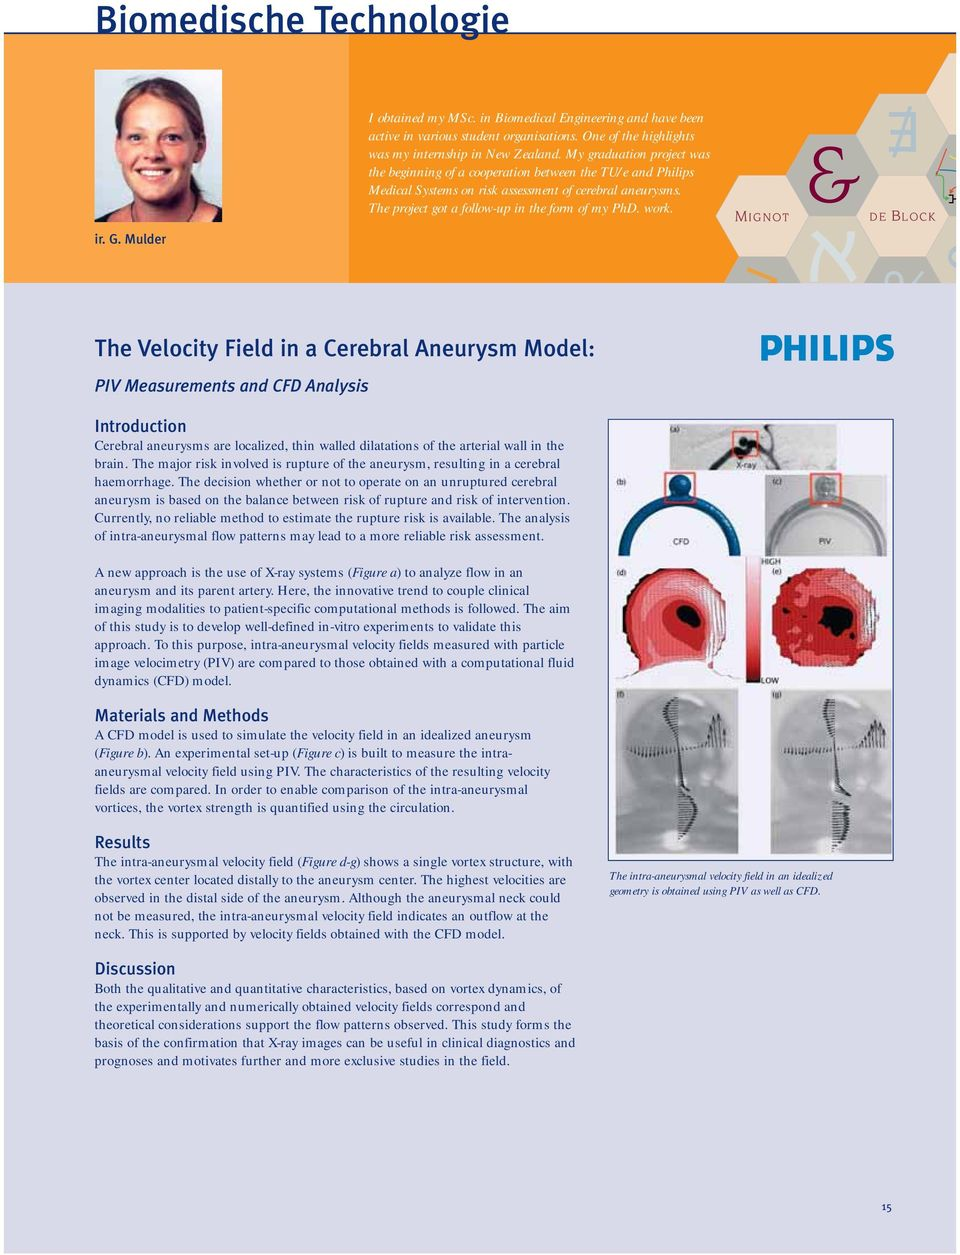 The Velocity Field in a Cerebral Aneurysm Model: PIV Measurements and CFD Analysis Introduction Cerebral aneurysms are localized, thin walled dilatations of the arterial wall in the brain.